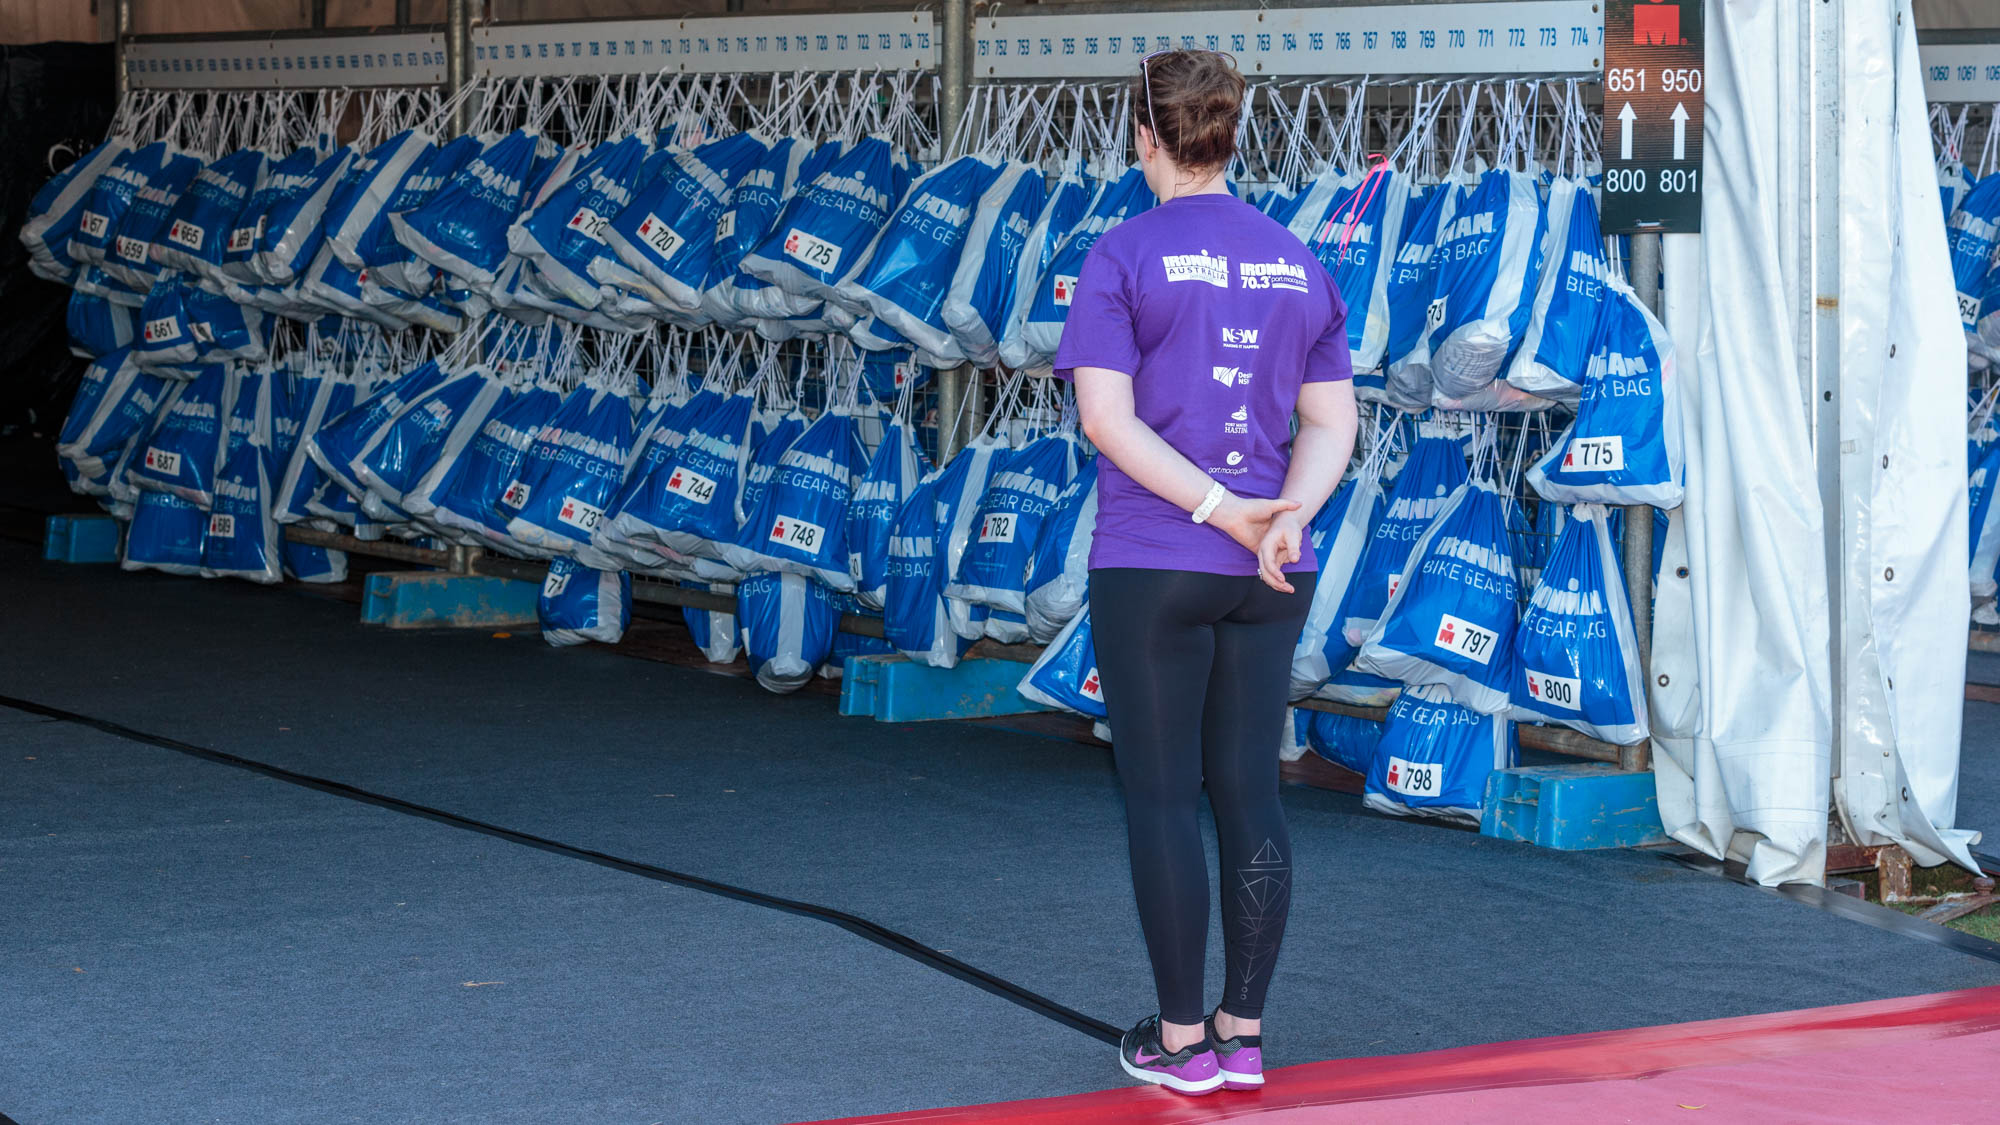 Competitor packs fill a tent of their own. Volunteers assist in finding them all.